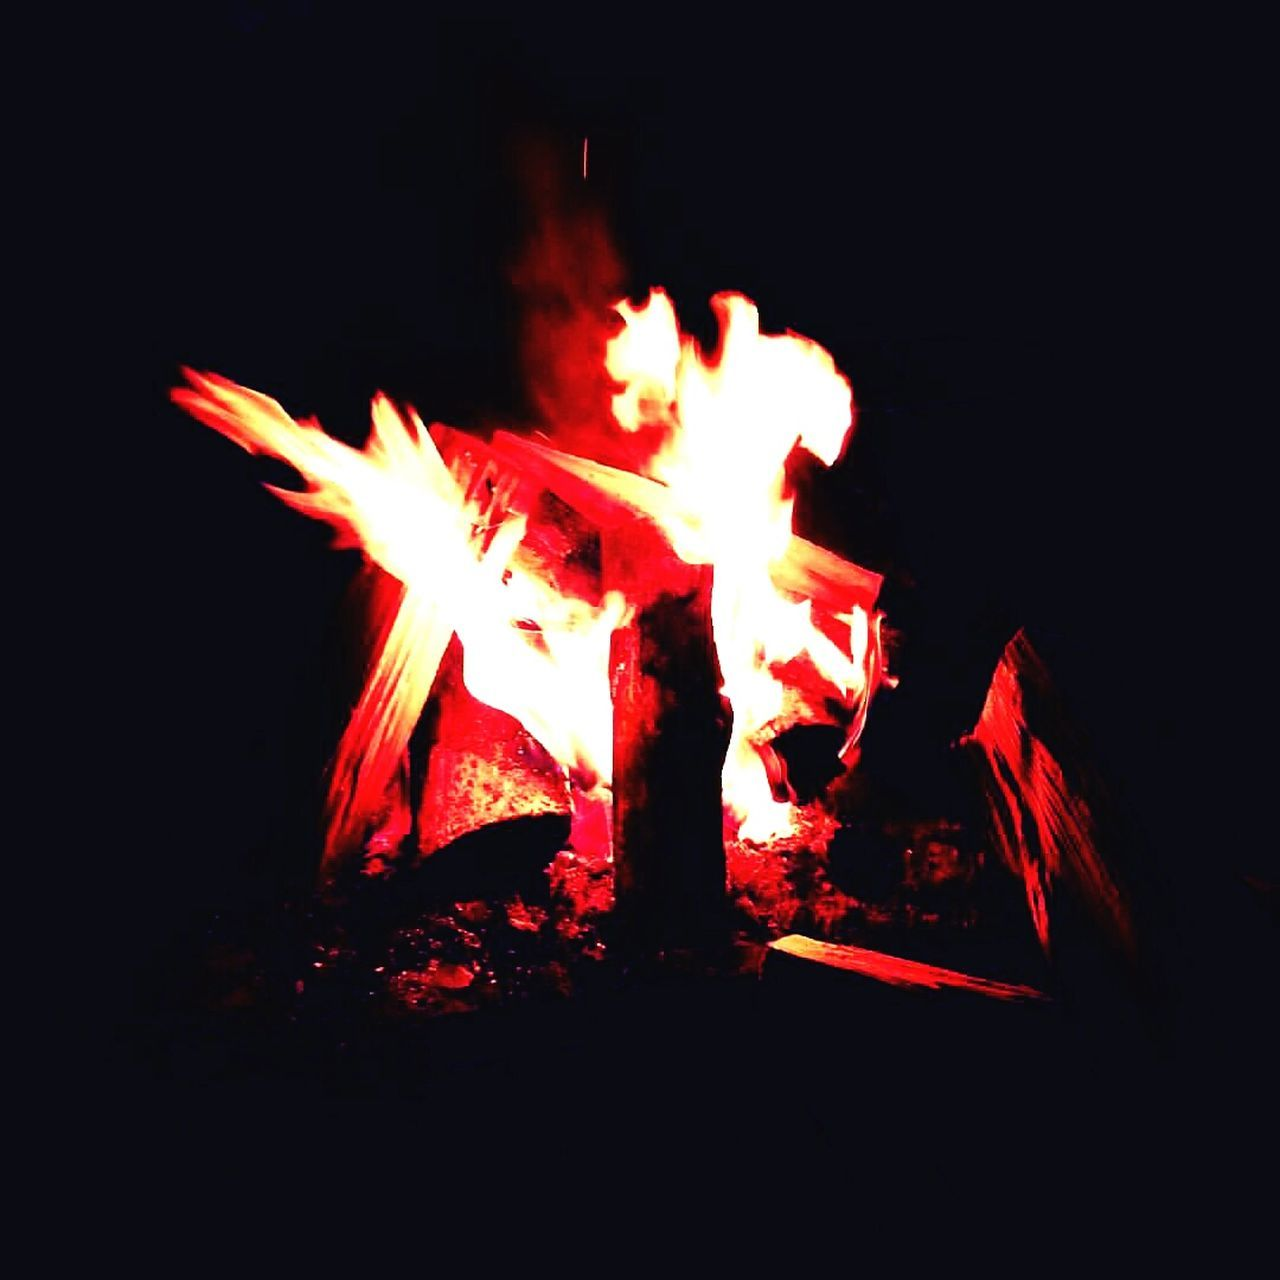 fire - natural phenomenon, burning, flame, heat - temperature, night, glowing, no people, bonfire, outdoors, close-up